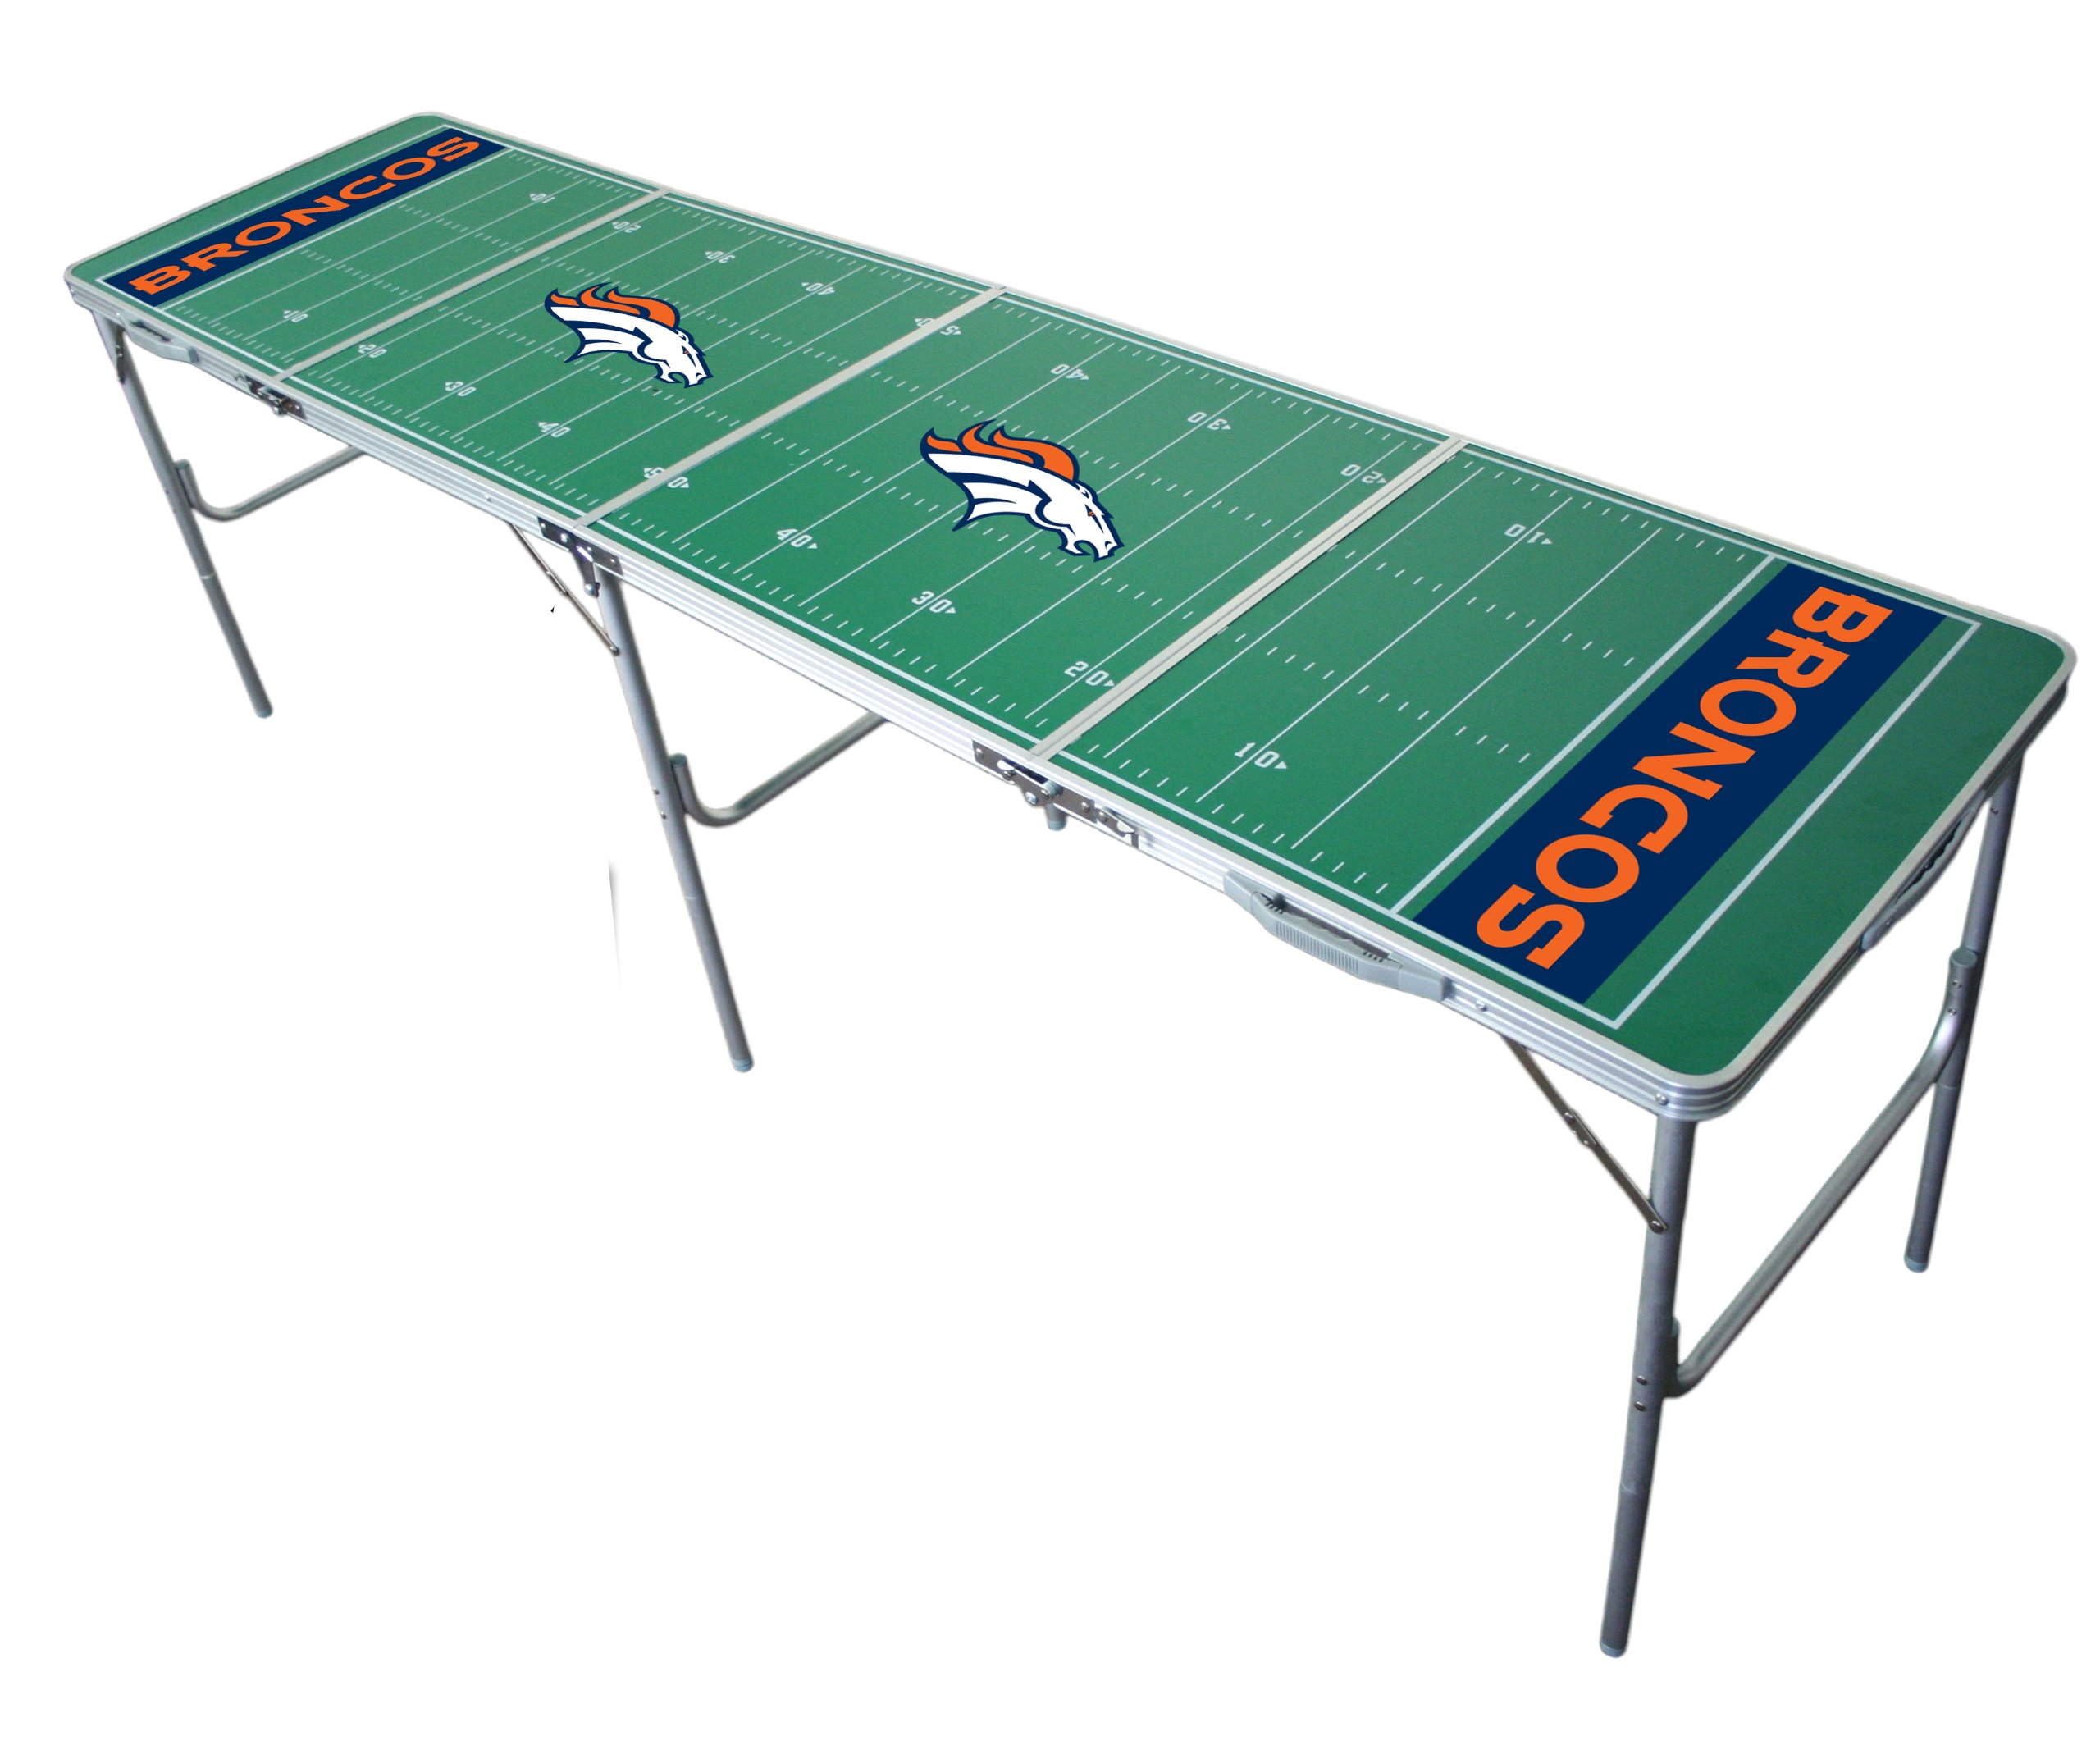 Denver Broncos 2x8 Tailgate Table by Wild Sports by Wild Sales